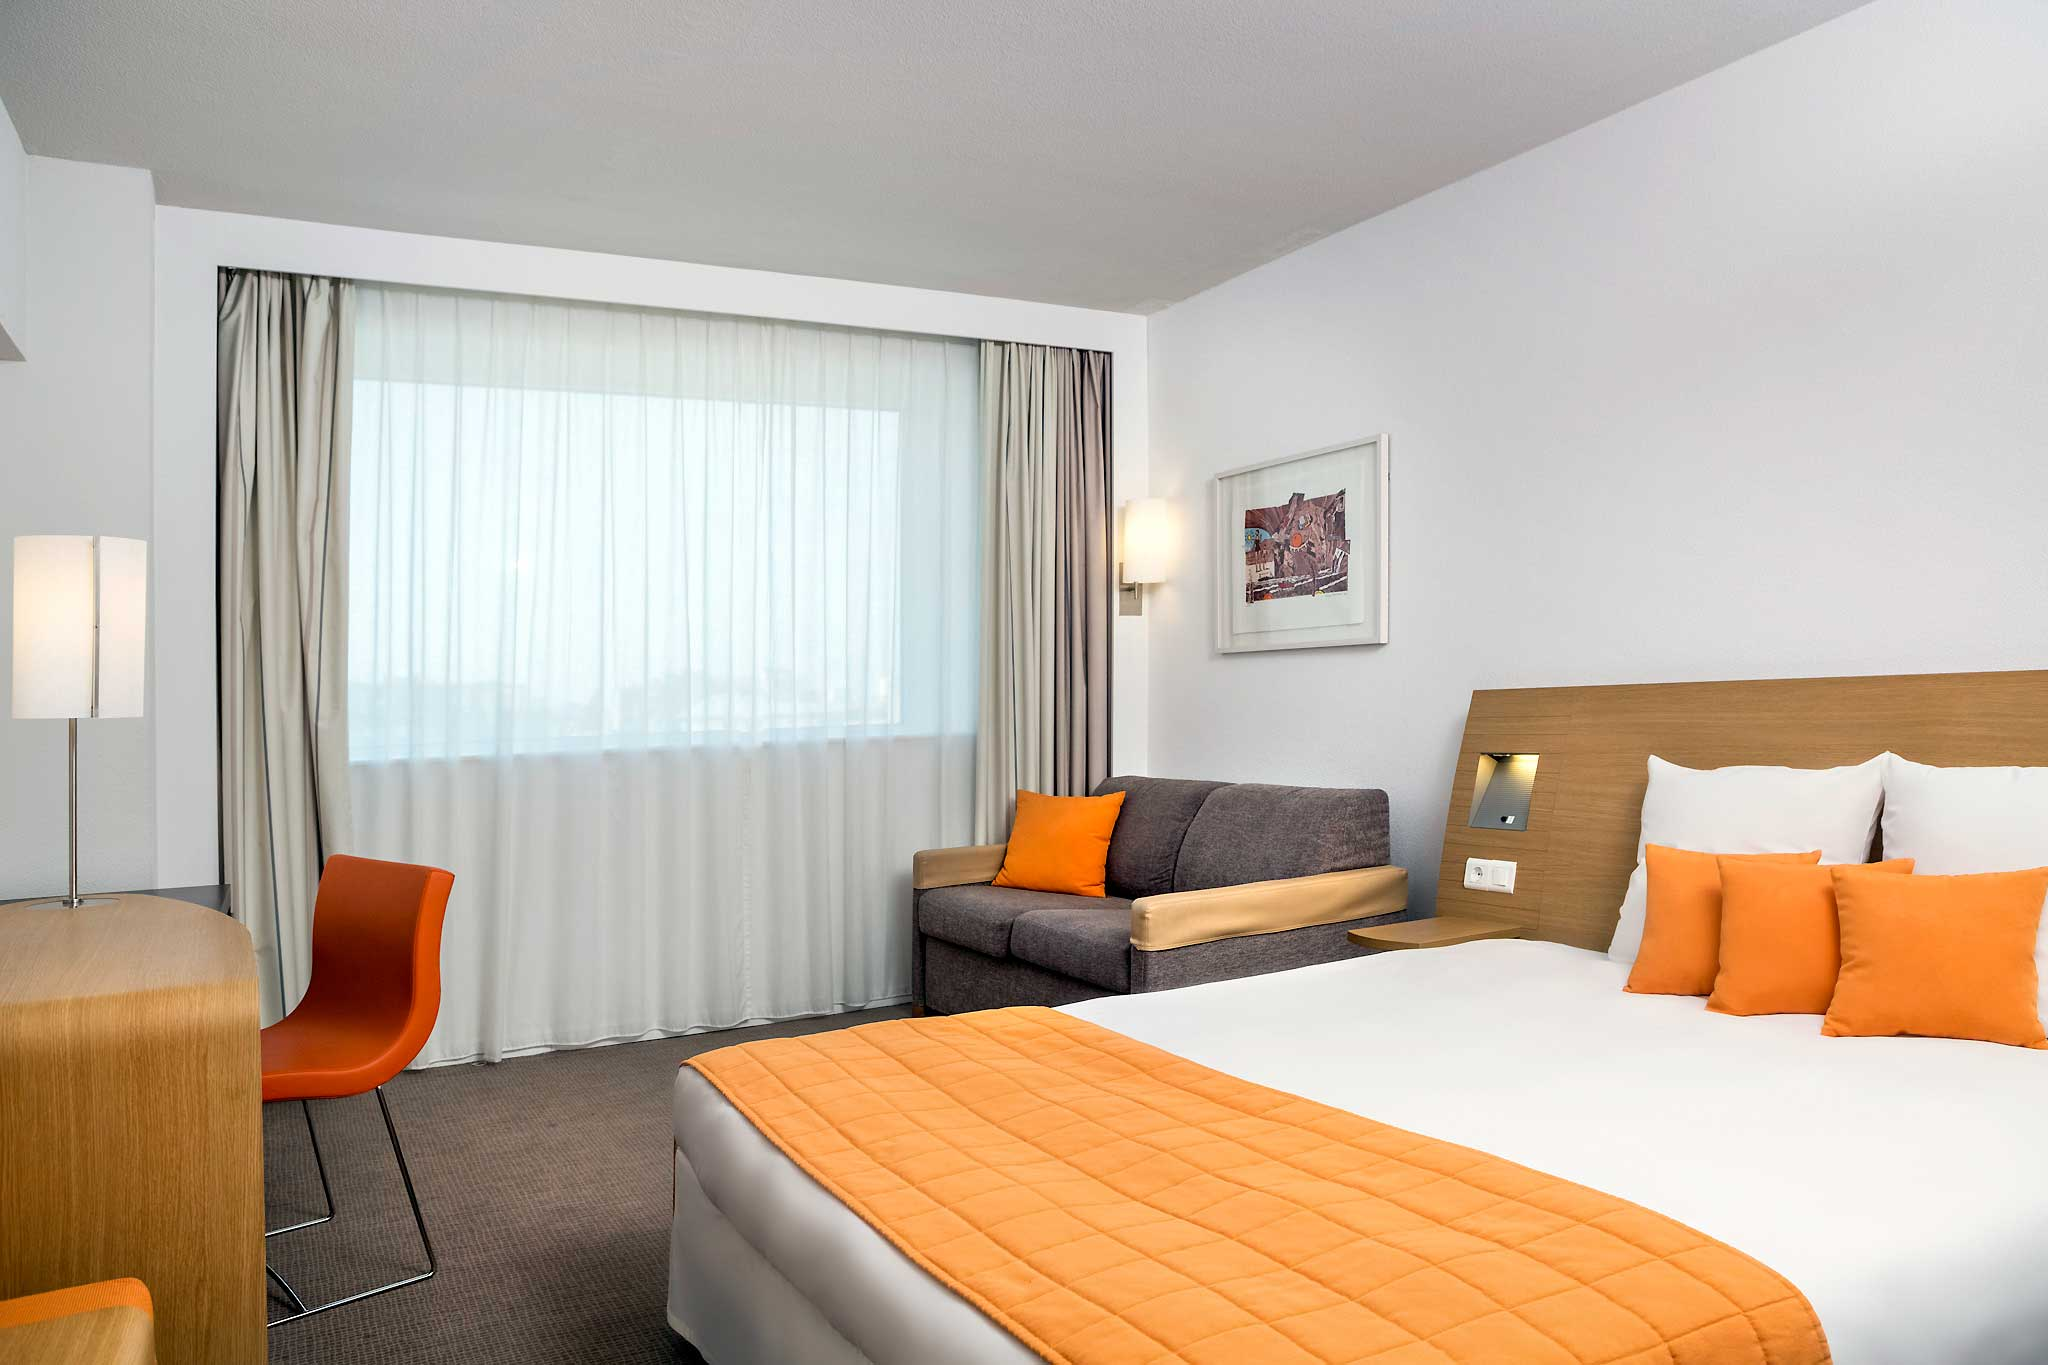 Novotel Bucharest City Centre 客房视图